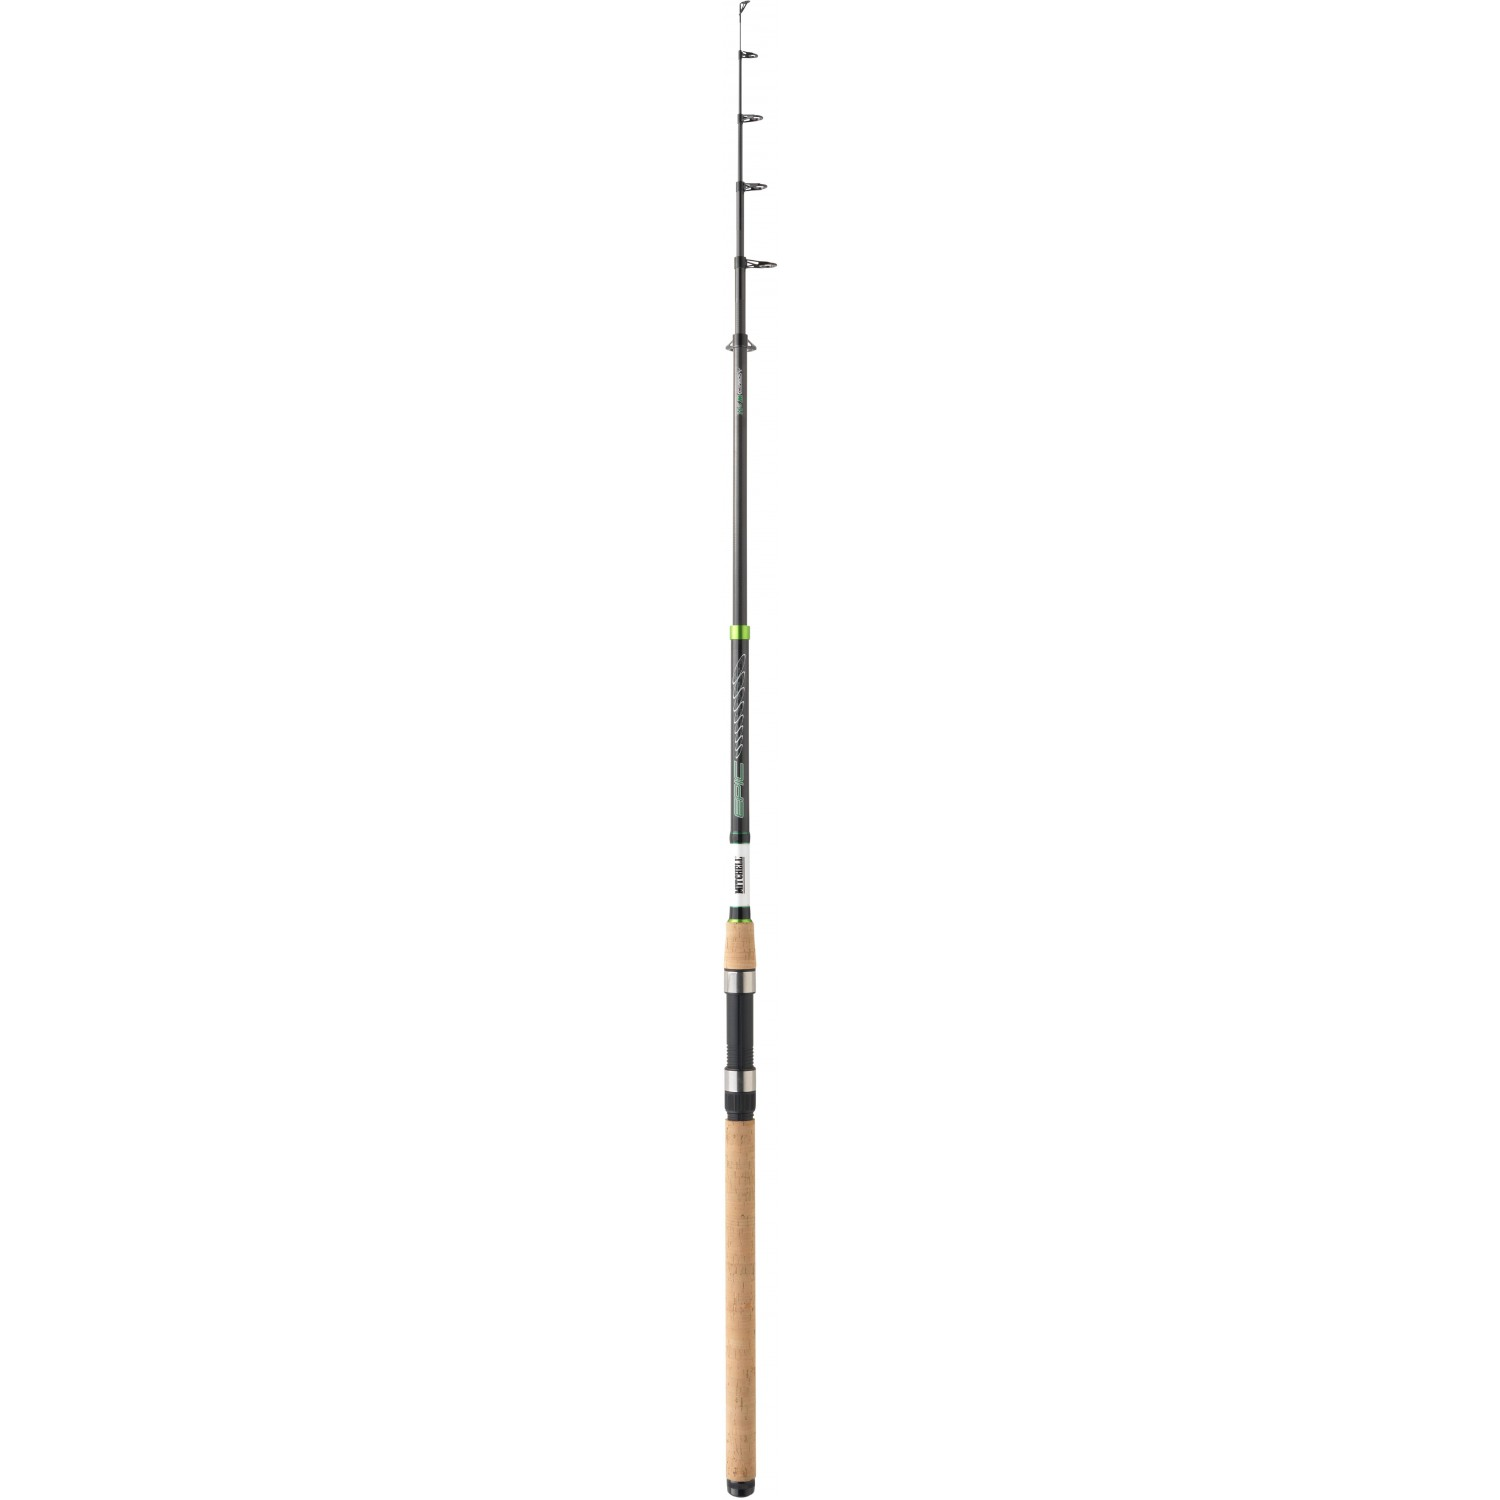 Mitchell Epic Tele Trout ML 3.10m 5-20g